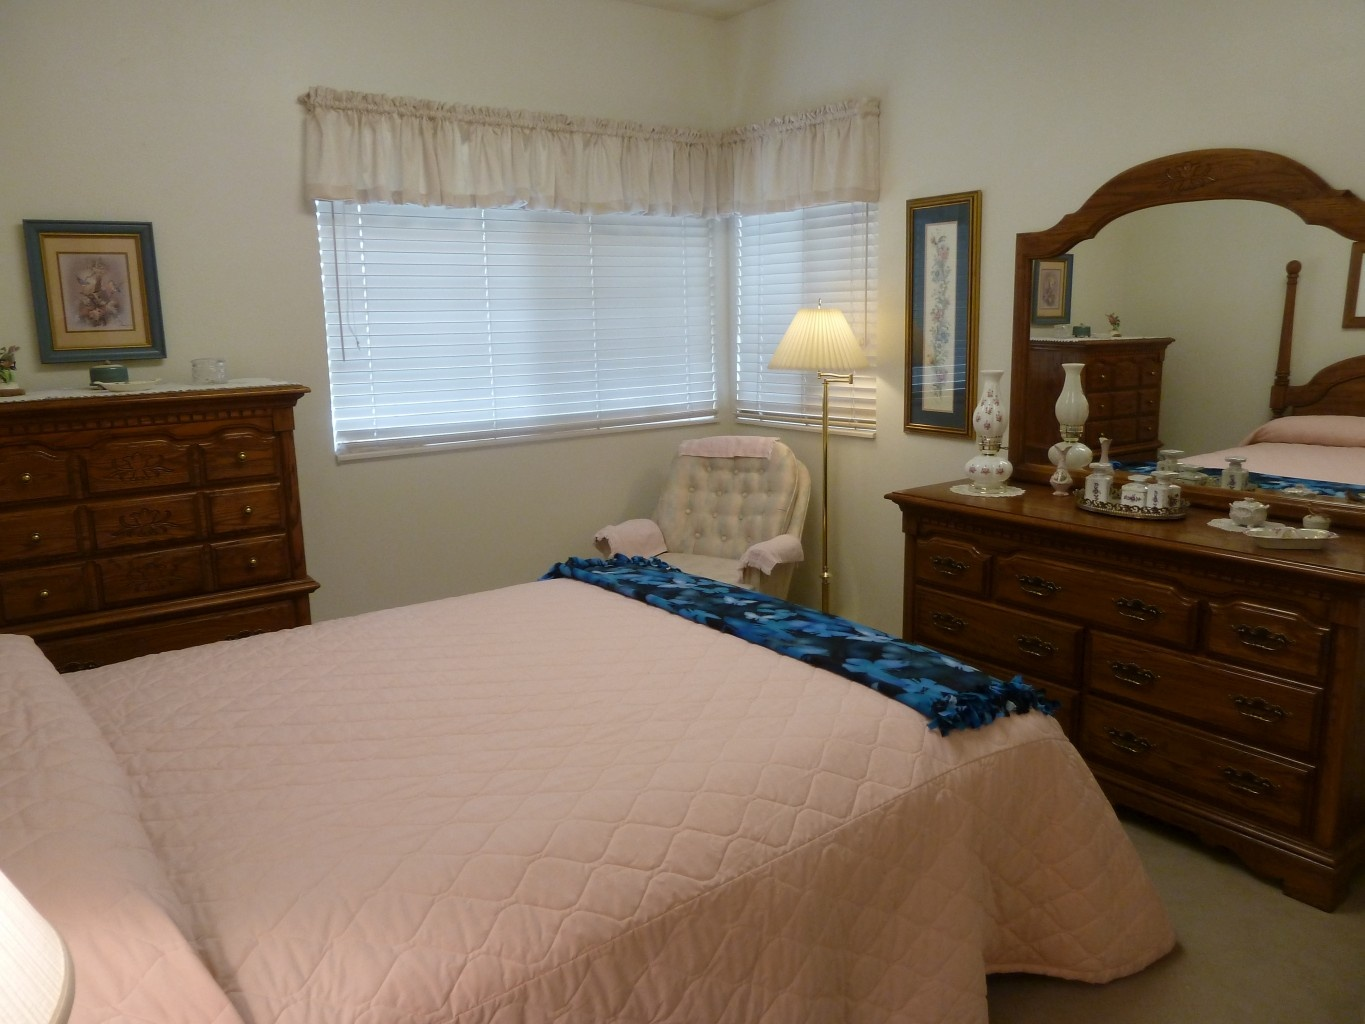 Denver Mattress Pueblo Furniture S Pueblo Co Nrys Info Such As Serving To The Homeless We Rely